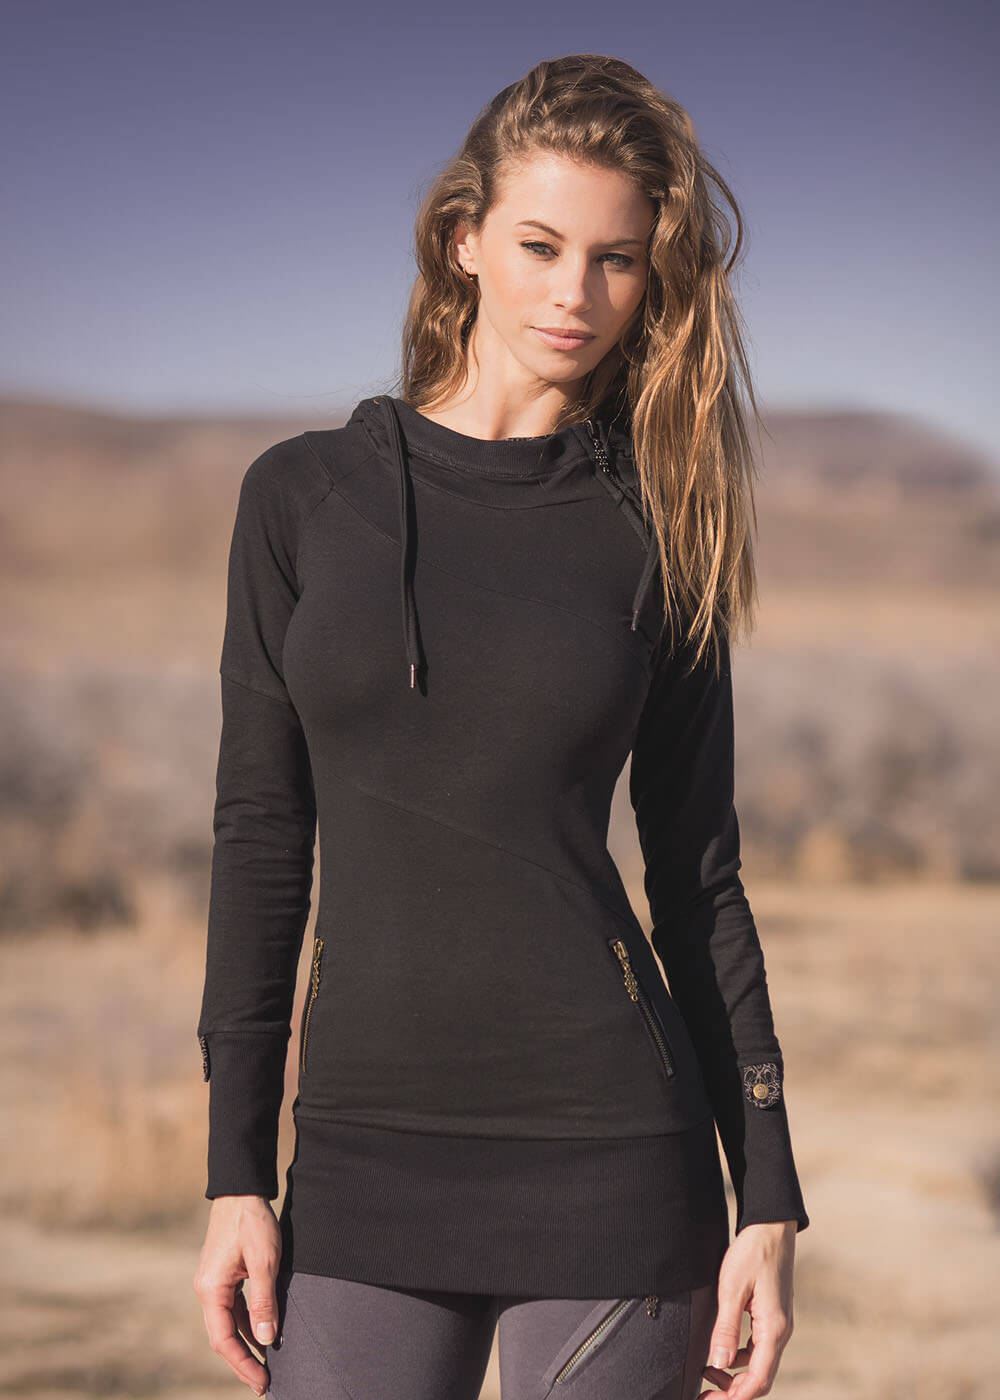 Black Surrender Hoodie in Organic Cotton & Hemp by Nomads Hemp Wear